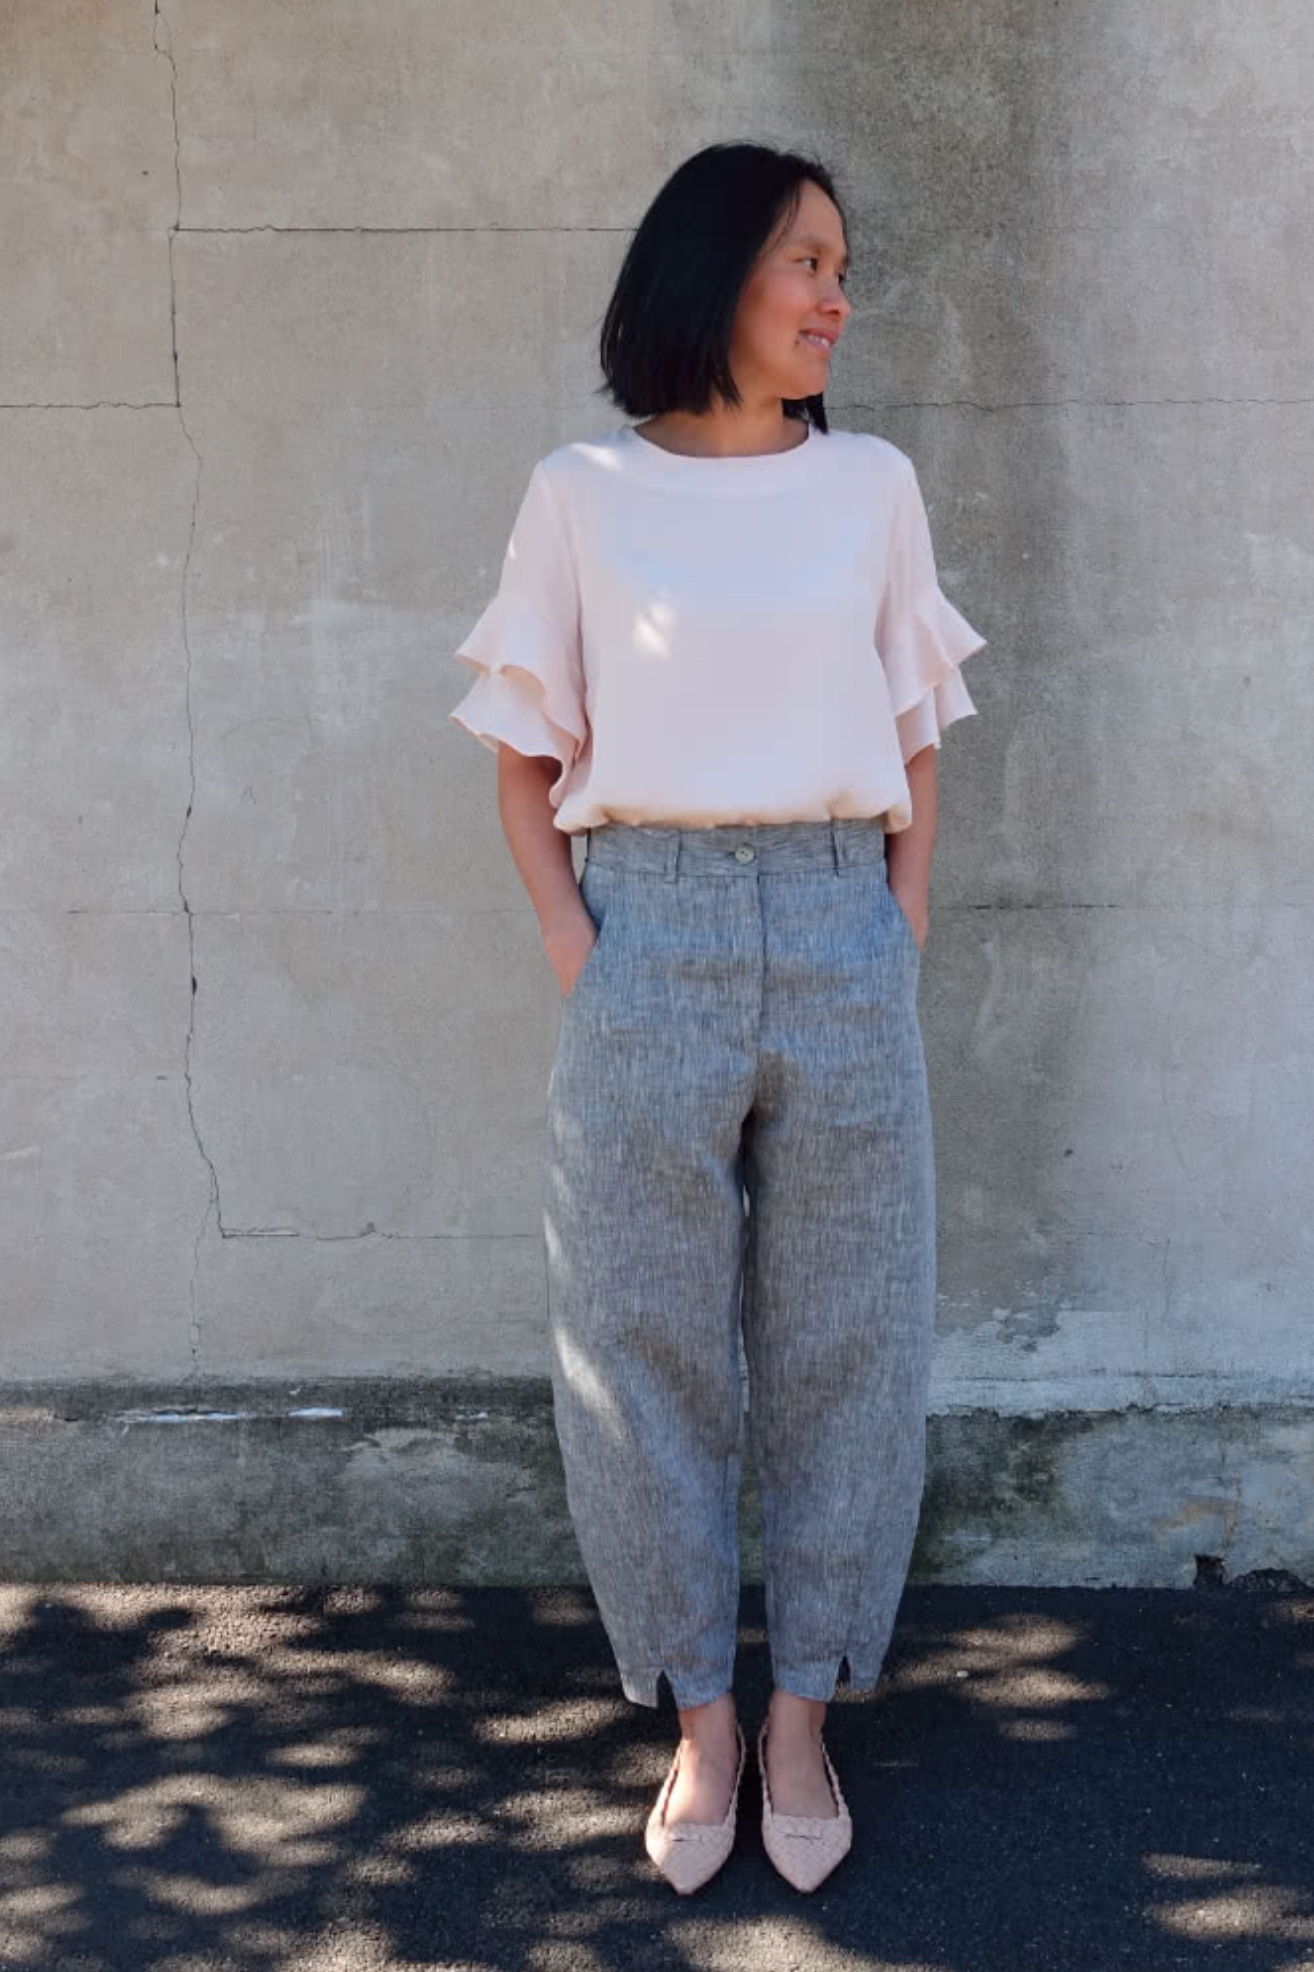 Kew woven pant/trouser from Style Arc